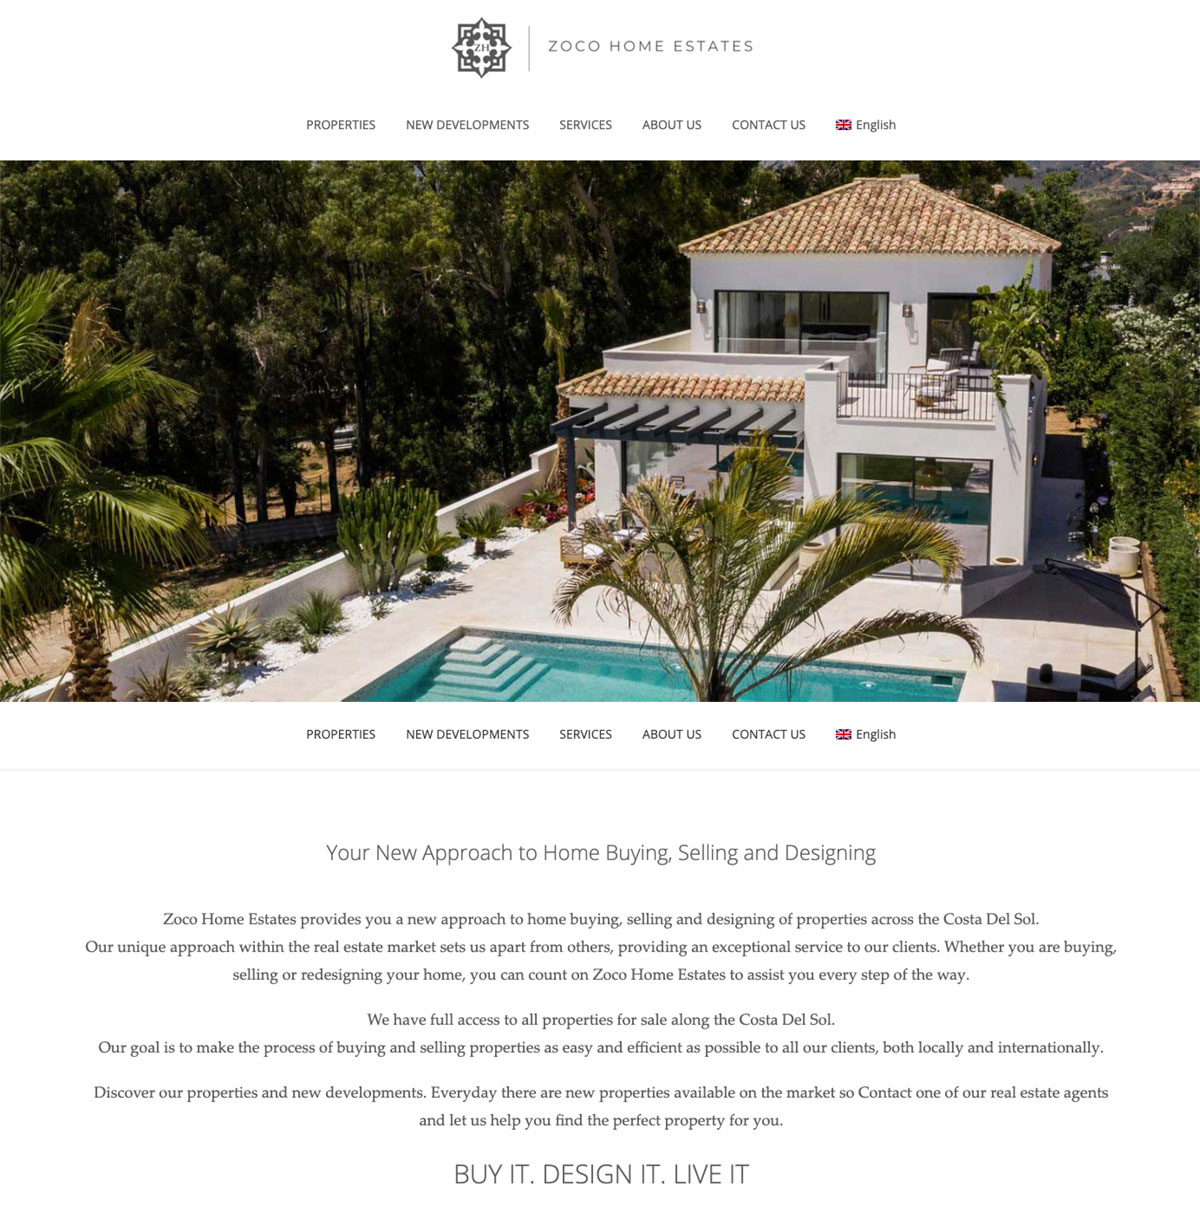 Zoco Home Estates Real estate website resales online plugin for wordpress, custom website design